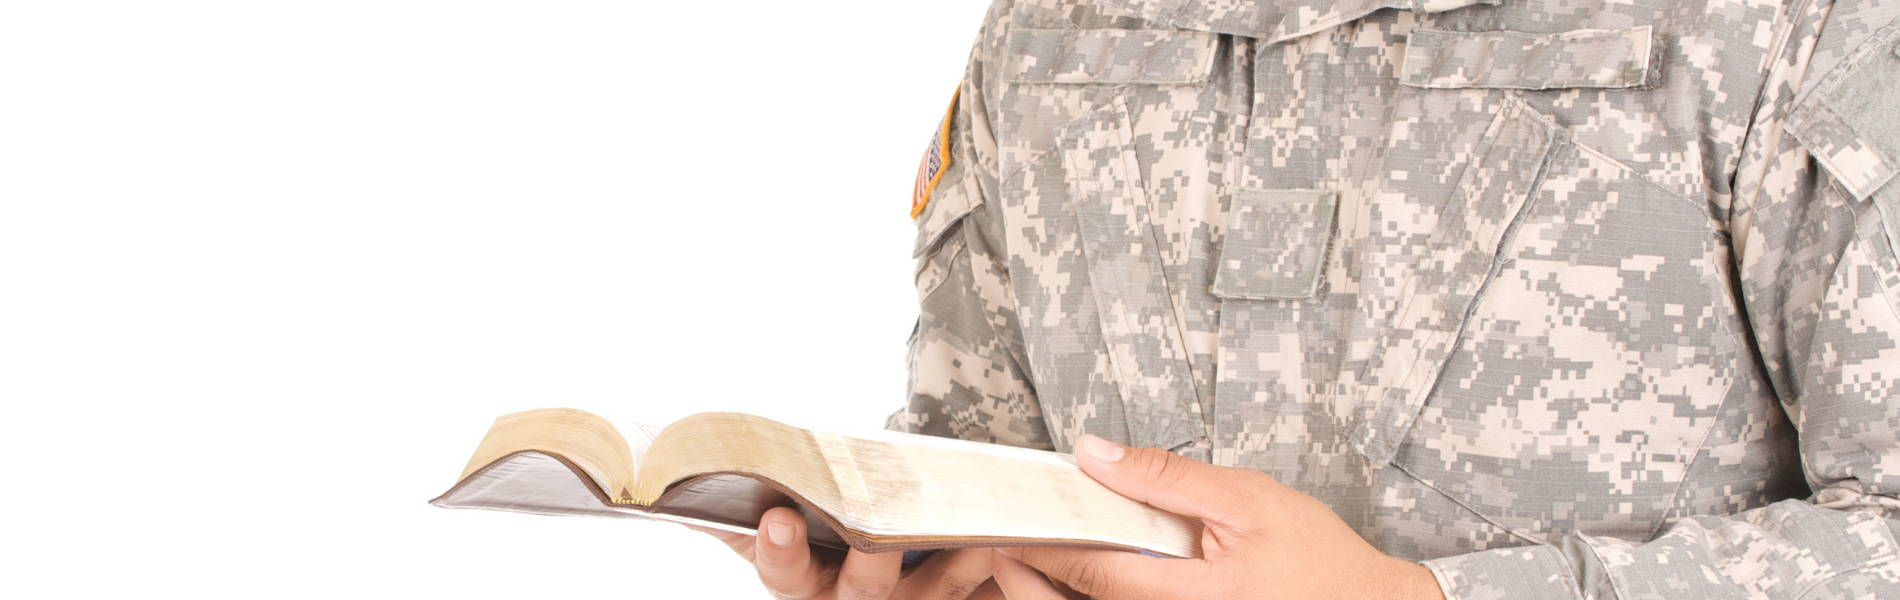 Military Bibles & Resources